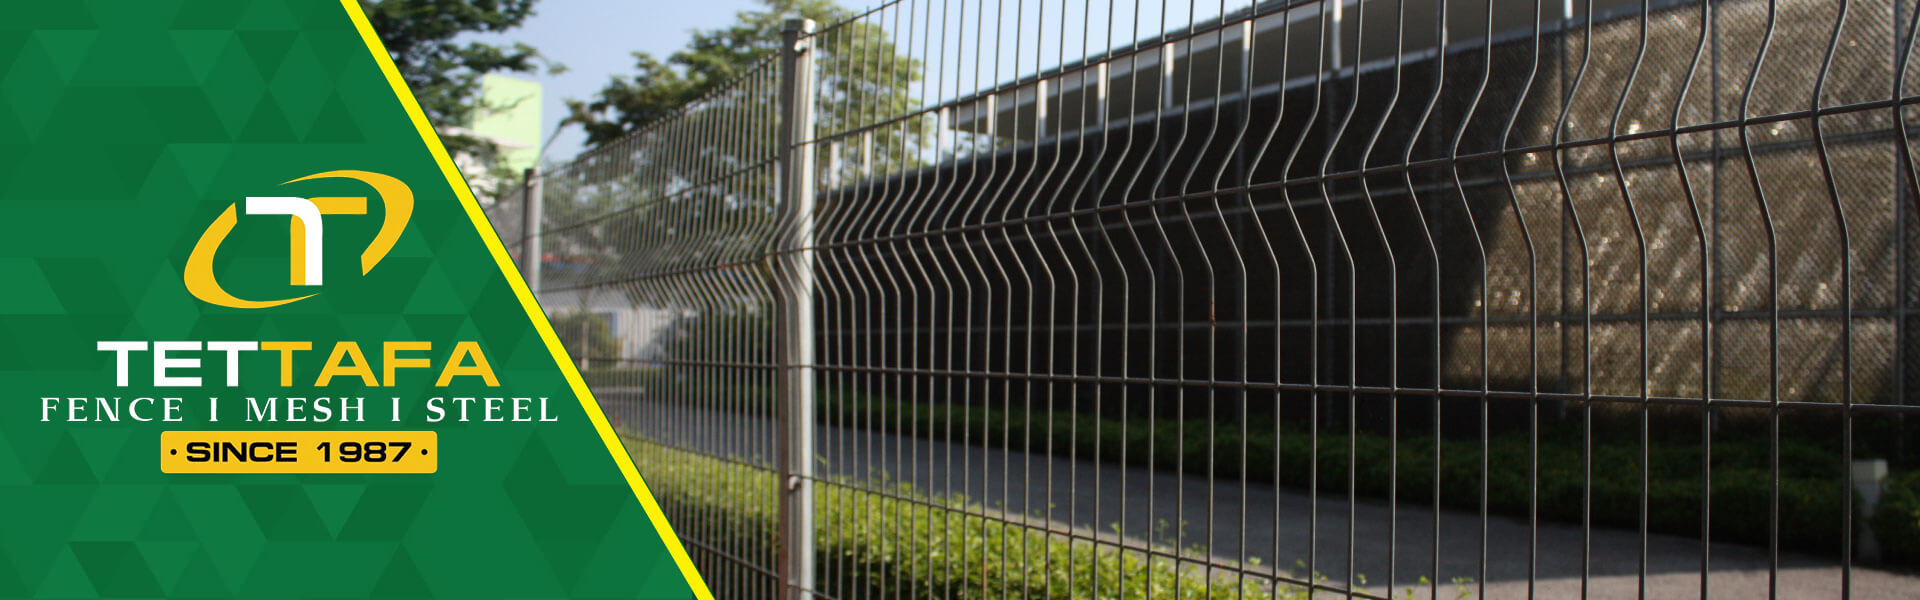 Security Fence Banner